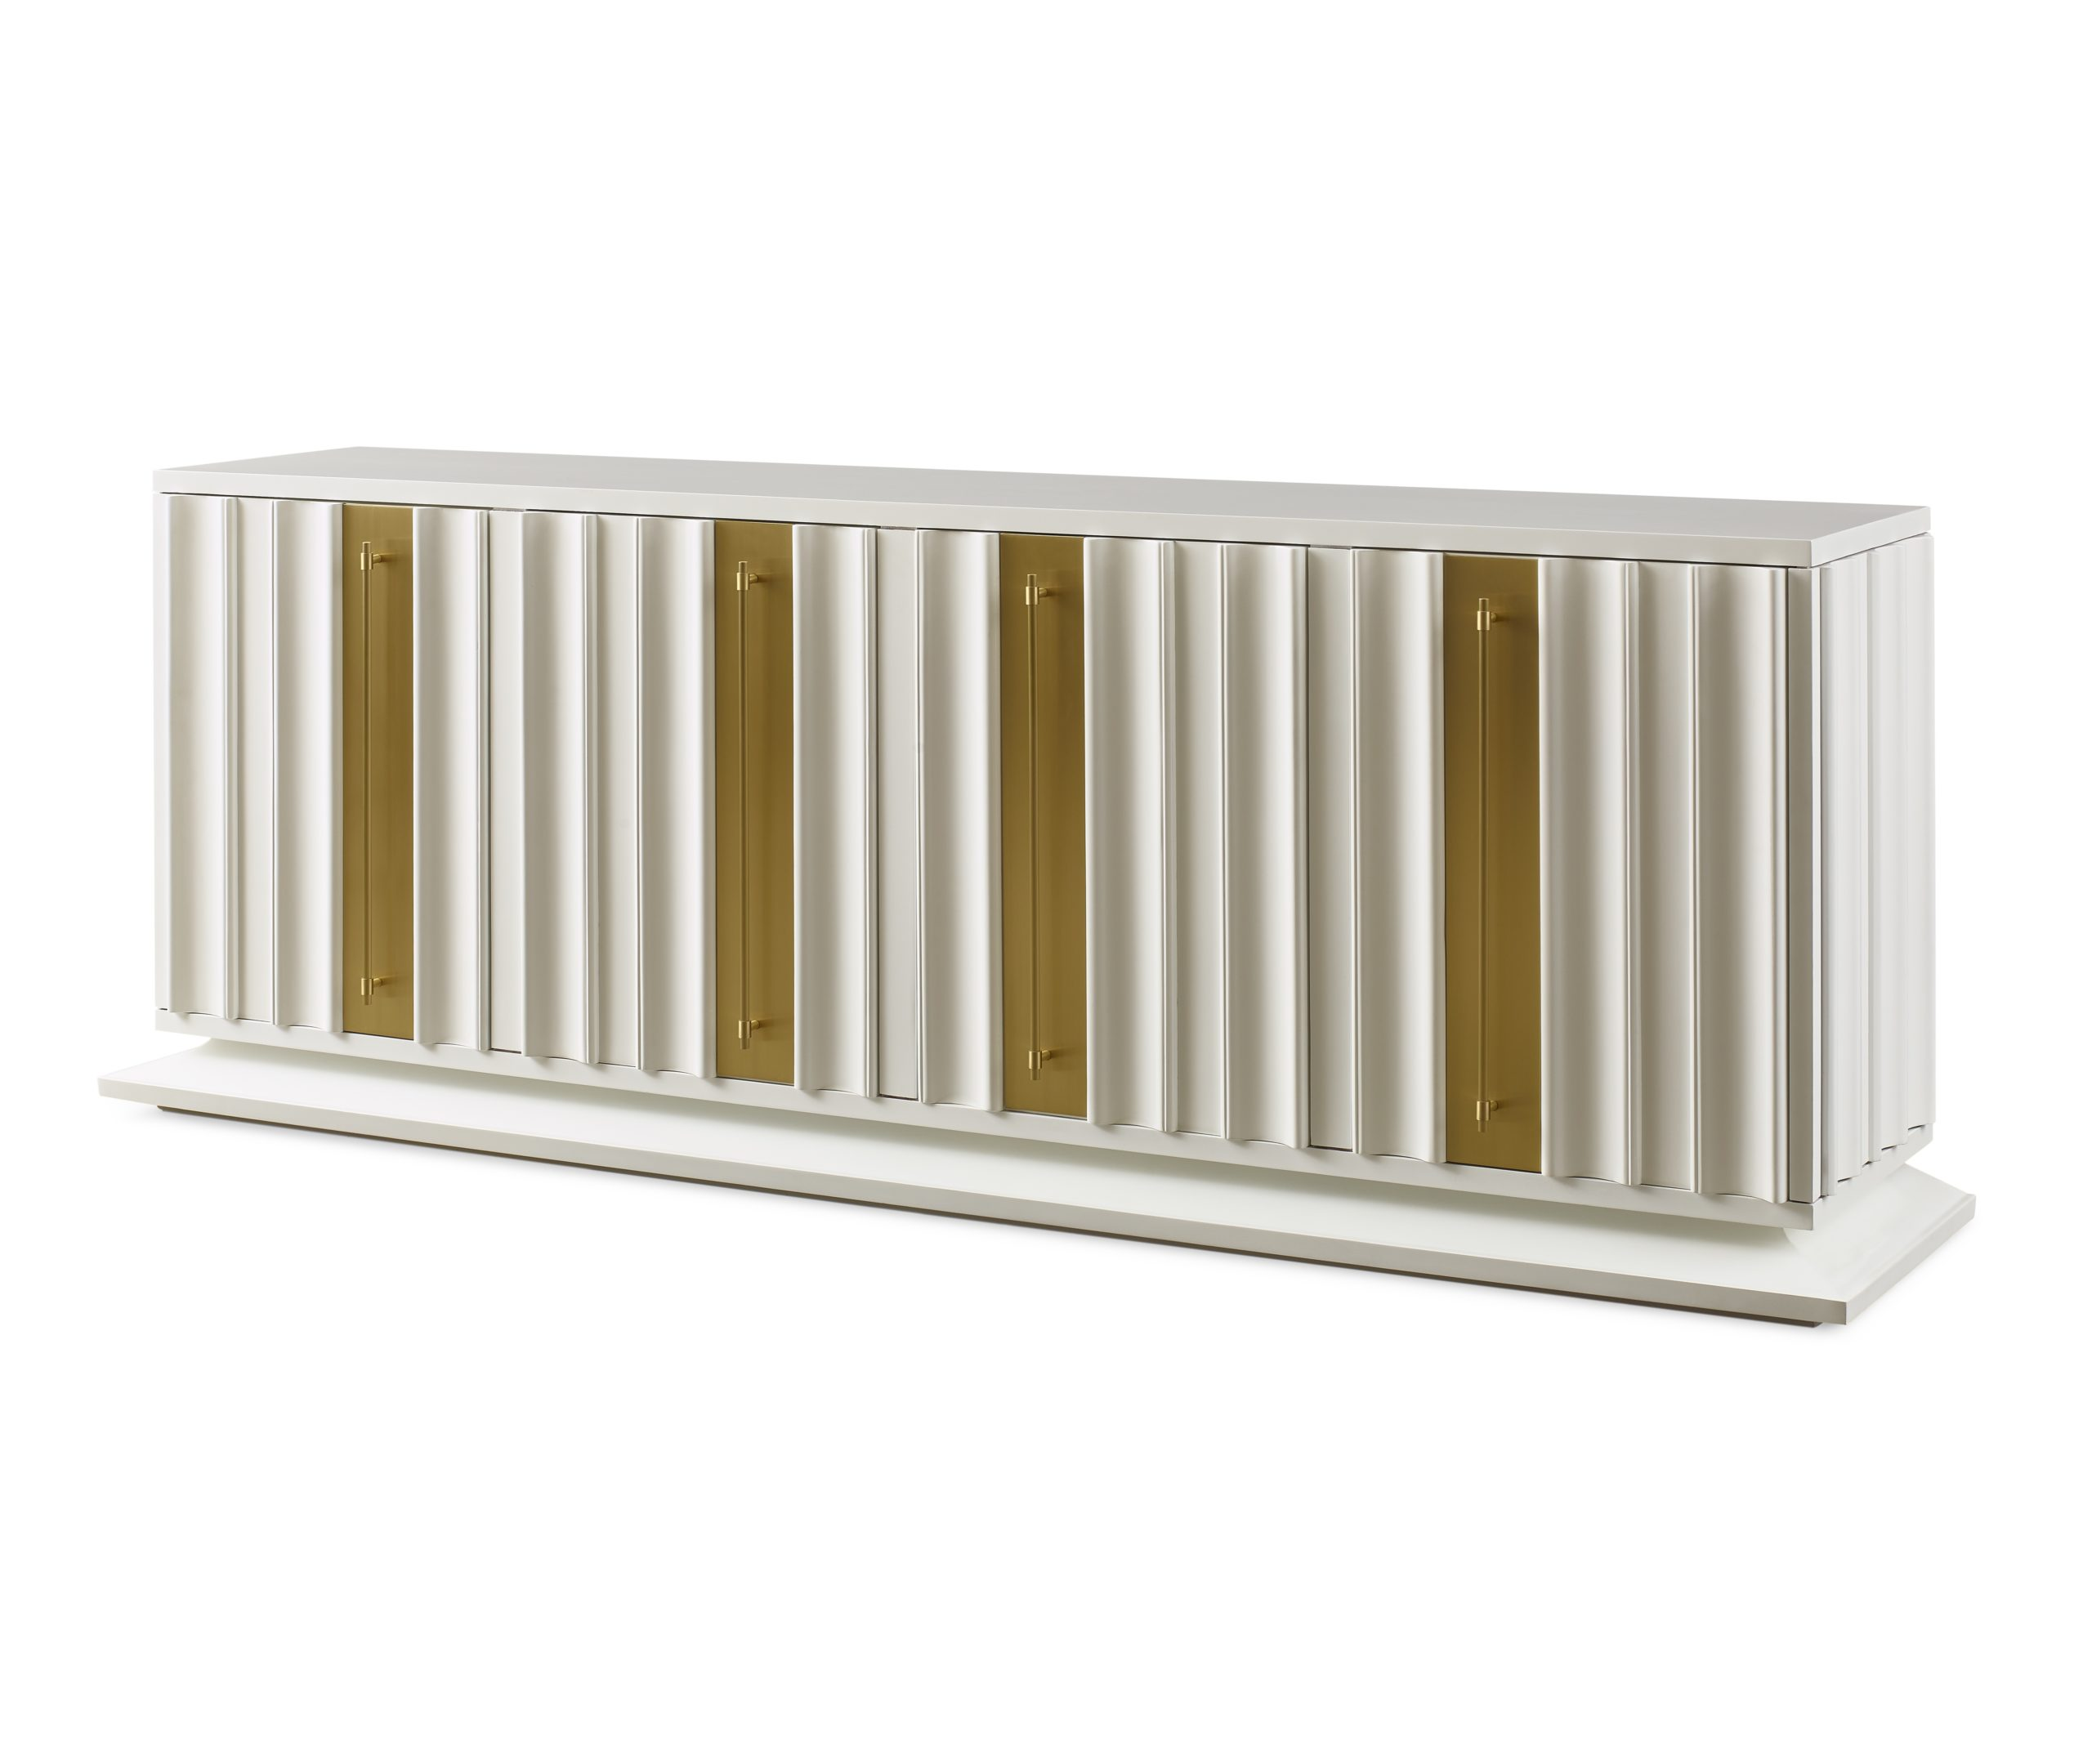 Baker_products_WNWN_cascade_credenza_BAA3283_FRONT_3QRT-scaled-1